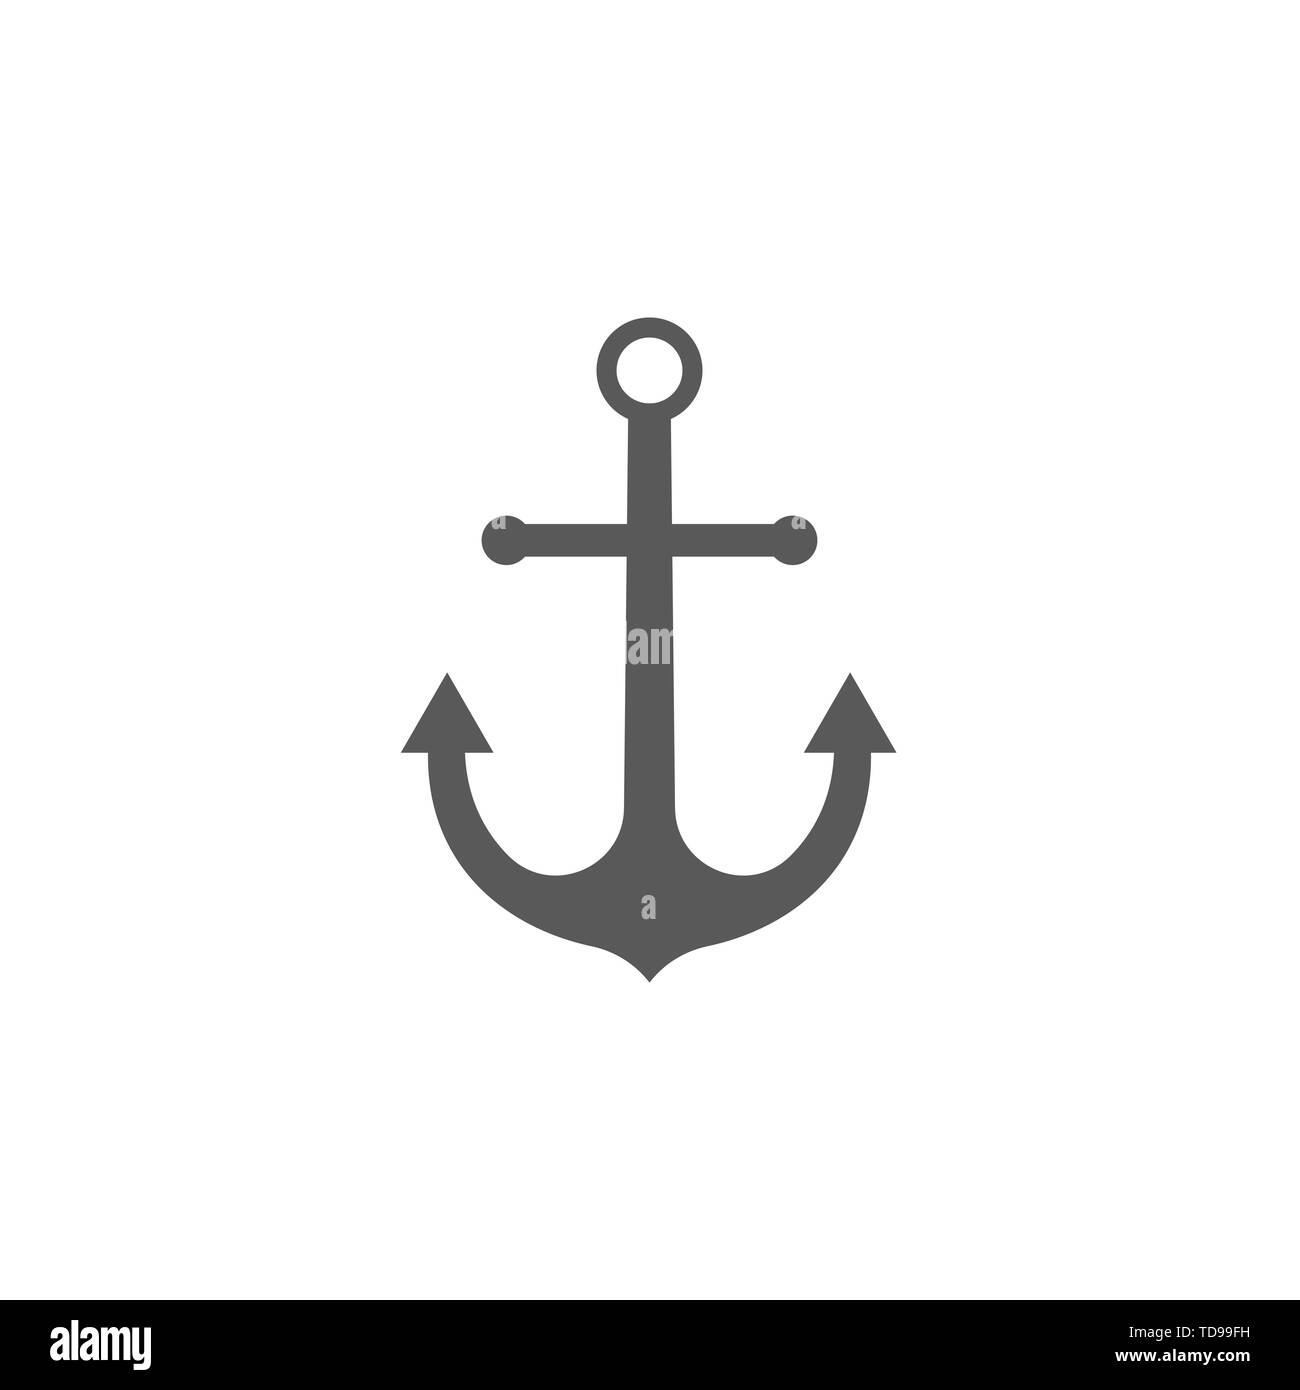 Anchor icon sign isolated on white background - Stock Image